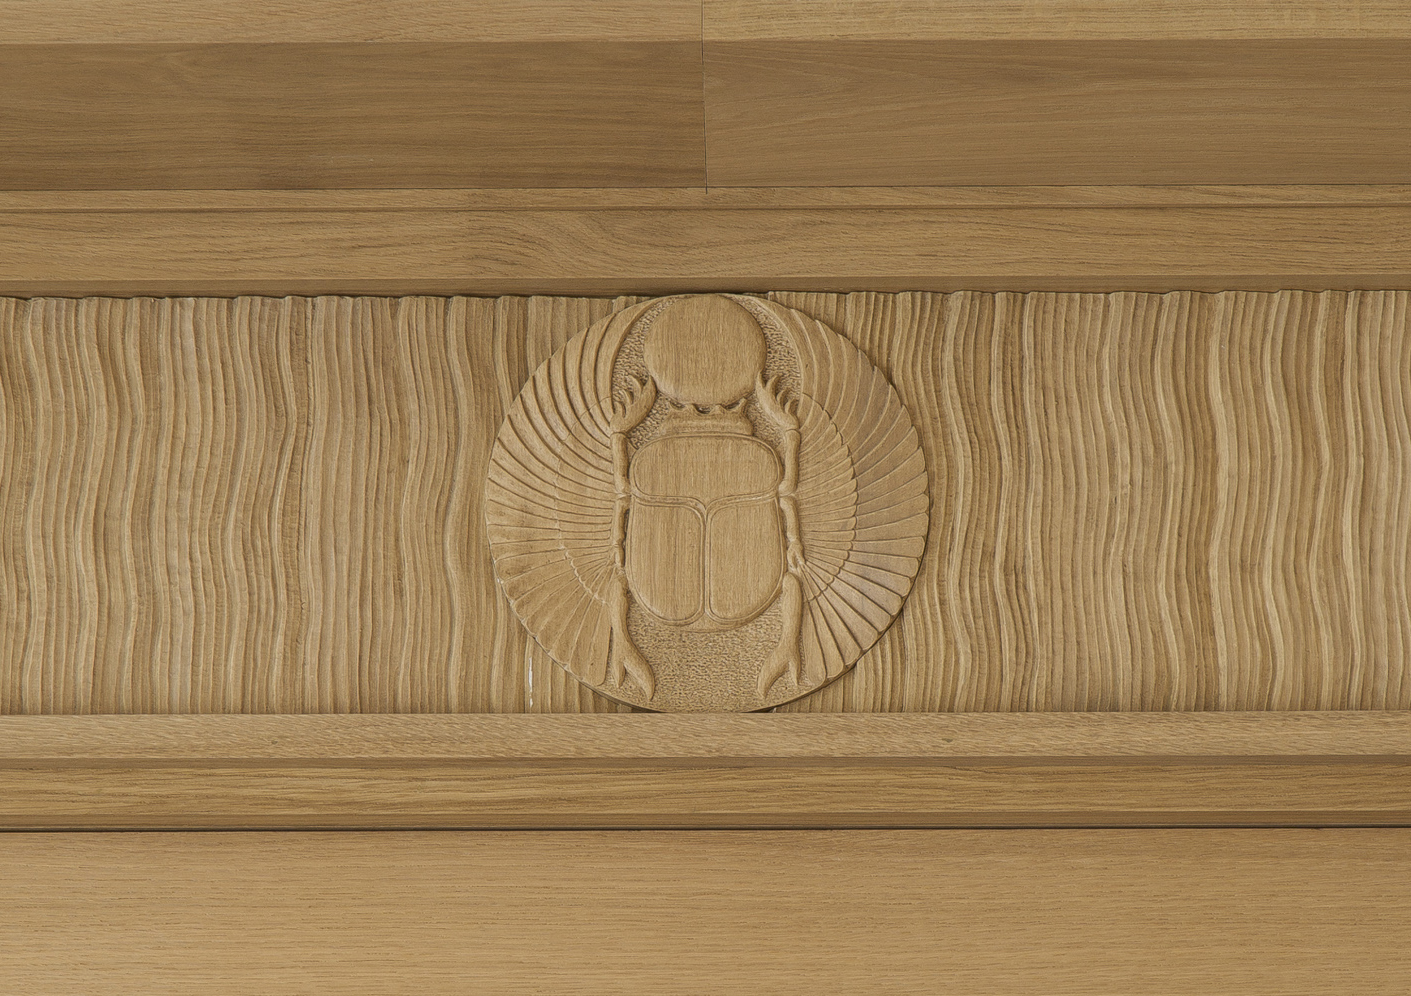 Detail of an Art Deco inspired cornice, with sculpted scarabs, created for interior decorator Pierre Yovanovitch